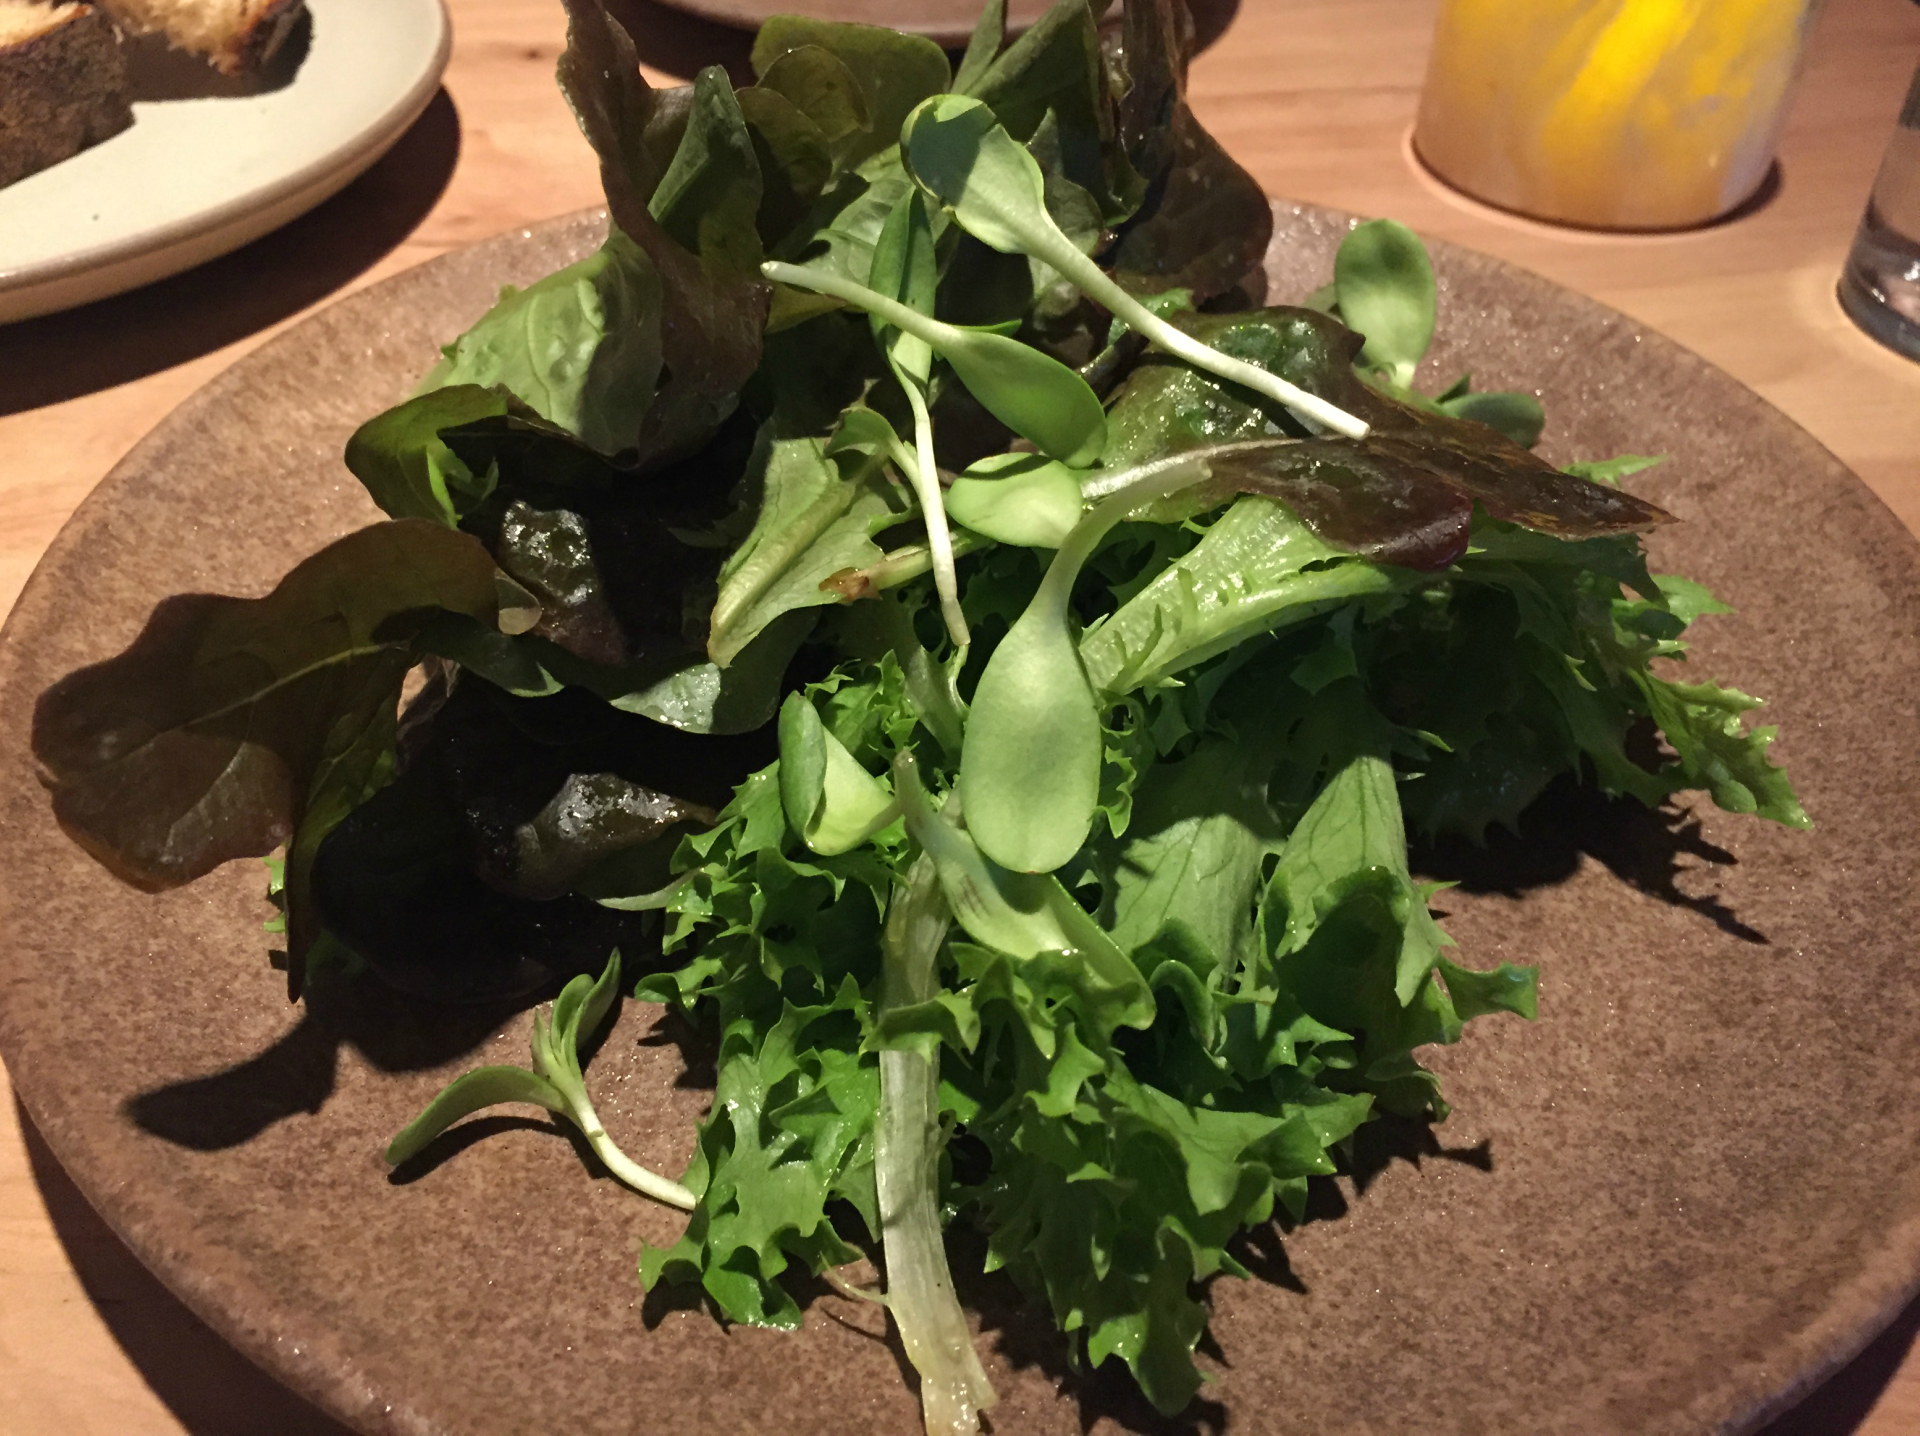 The restaurant's greens come from an aquaponic farm in West Oakland.